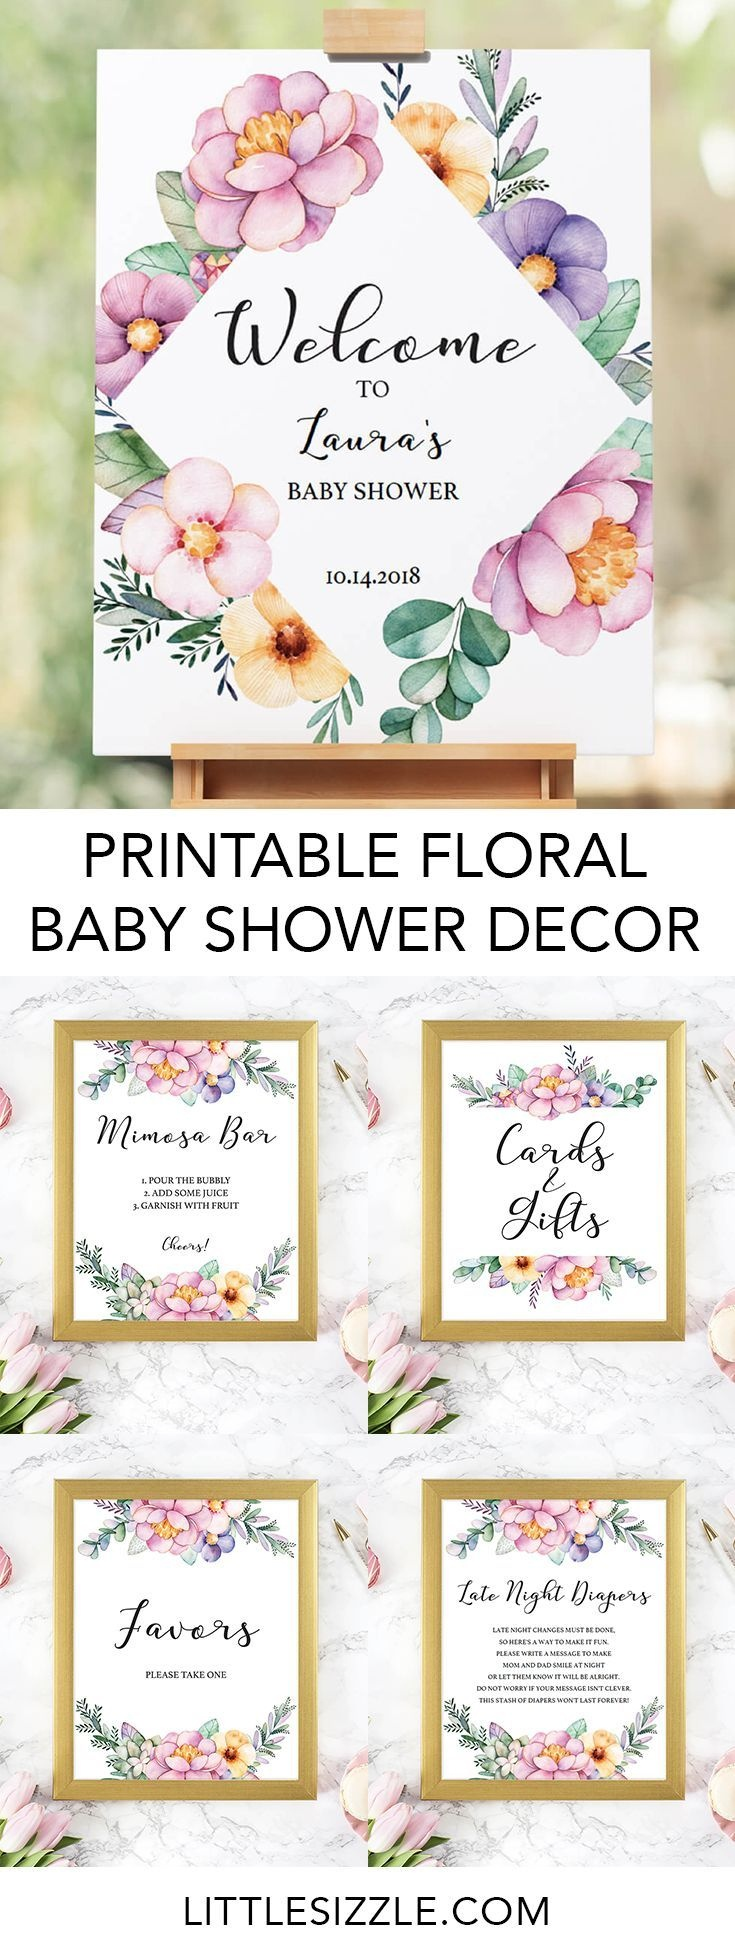 Printable Baby Shower Floral Decorations   Baby Shower Diy - Free Printable Baby Shower Table Signs